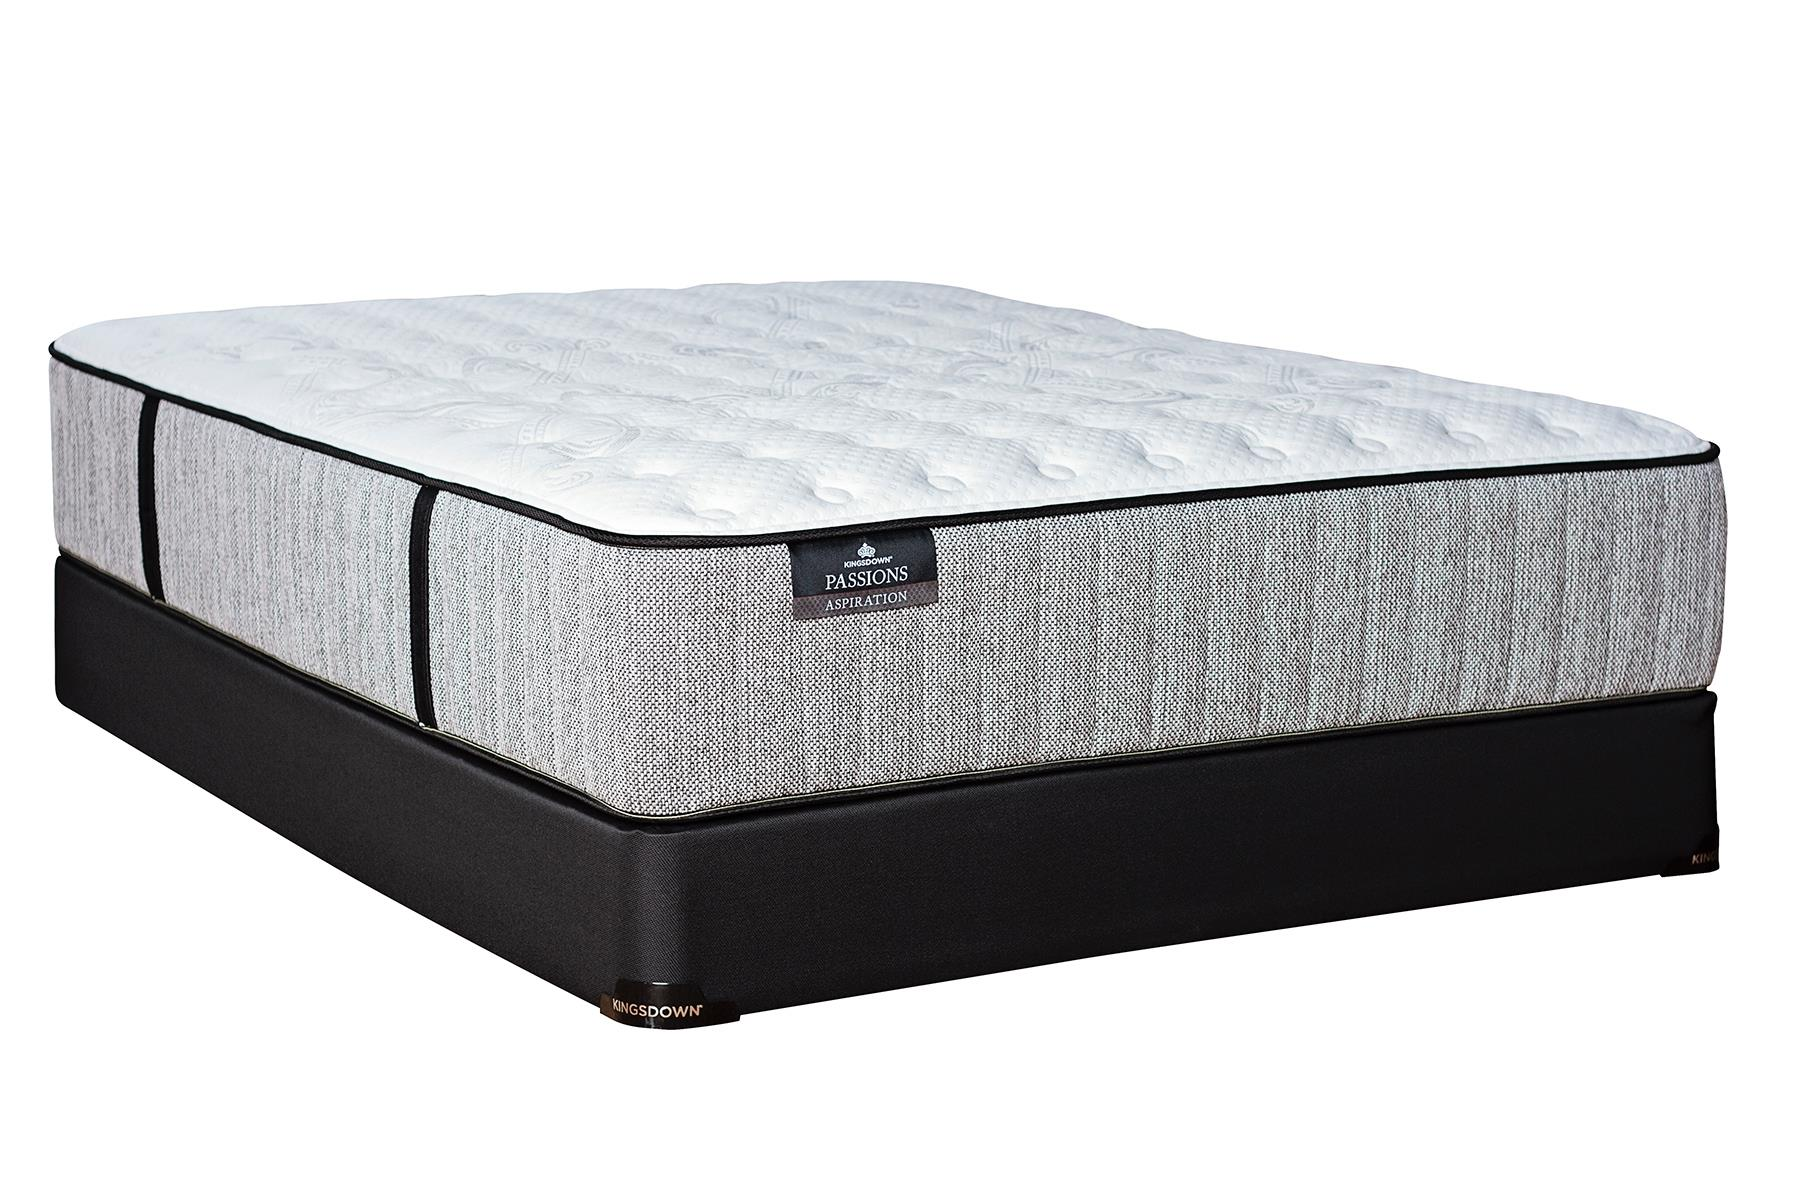 "Kingsdown Passions Aspiration Firm Full Firm 14"" Mattress - Item Number: 1216Firm-F"